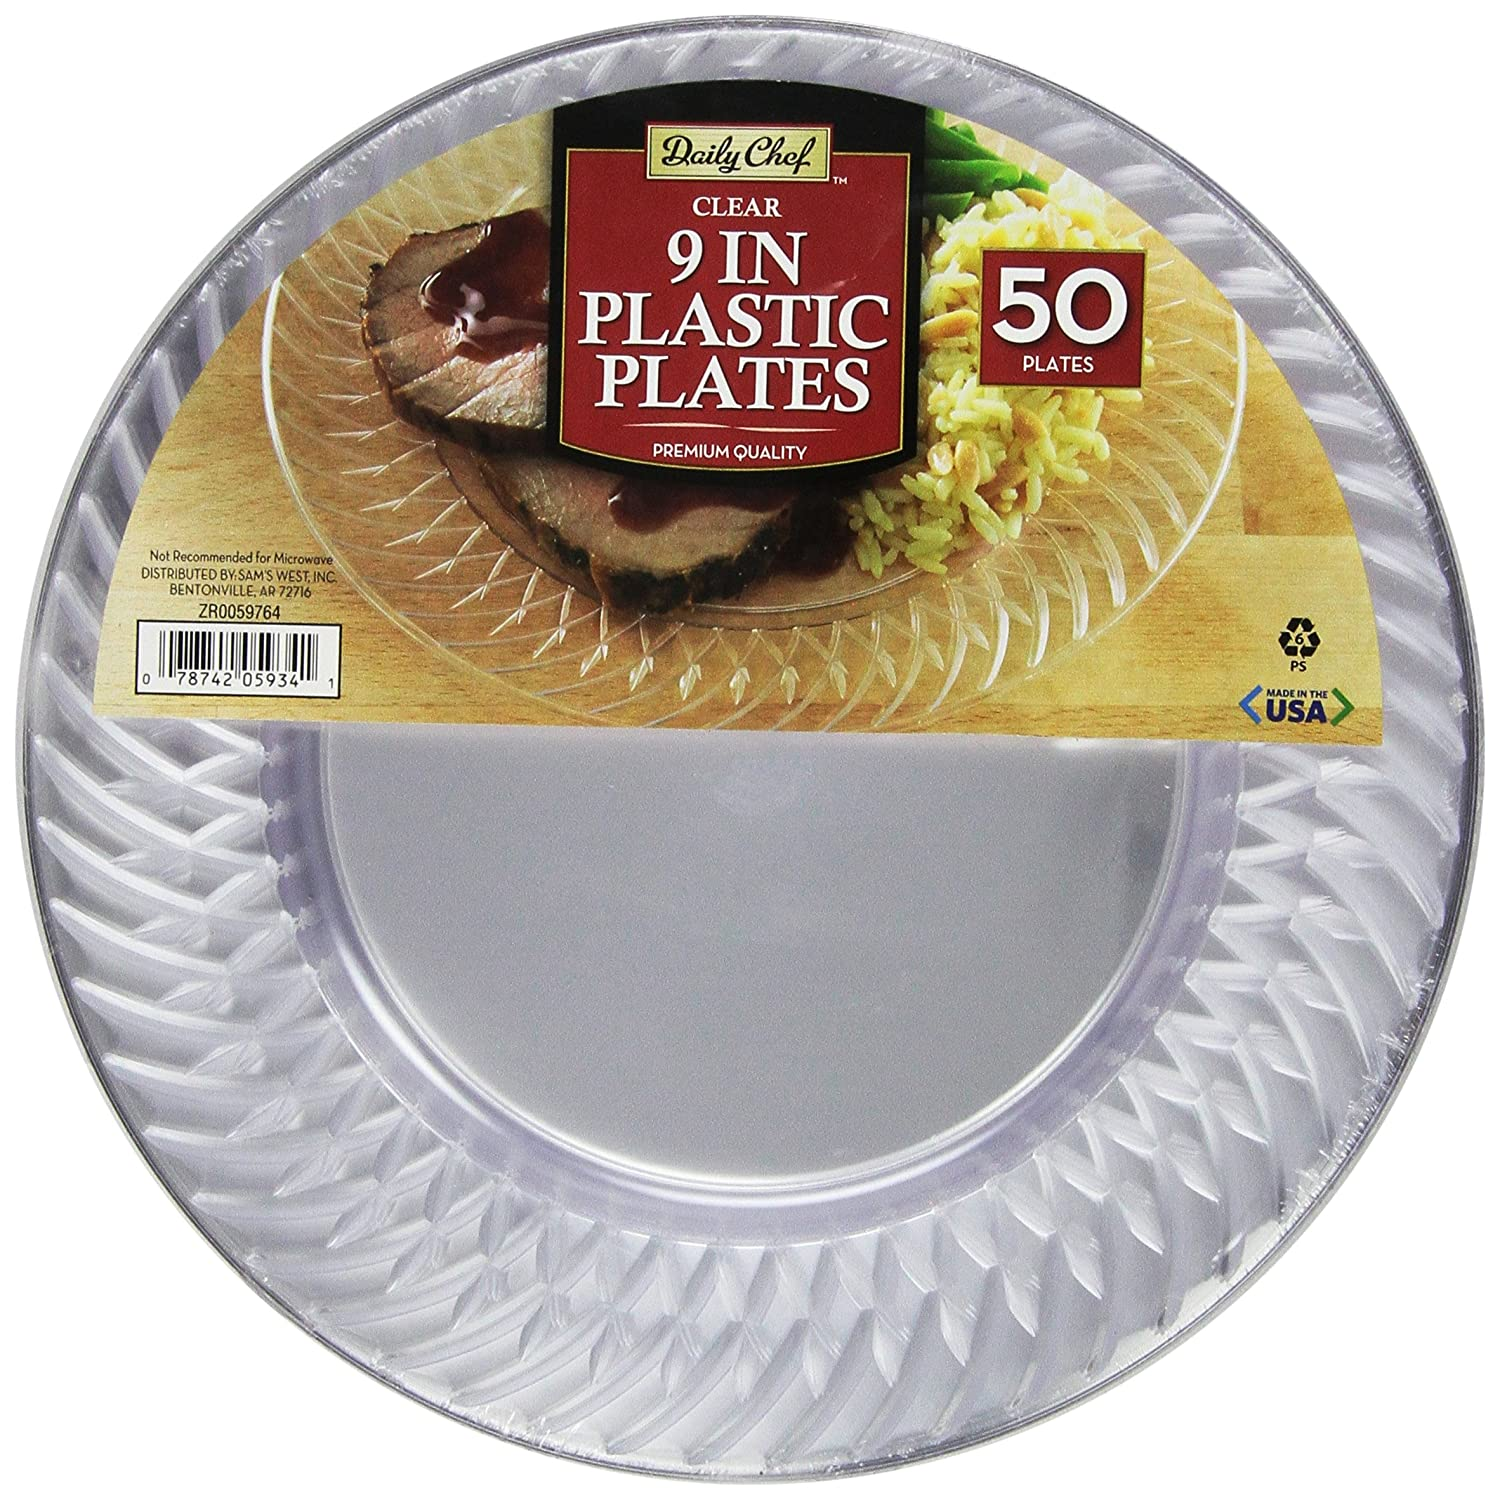 DAILY CHEF Clear Plastic Plates, 9, 50 Count, 4.5 lb 9 NA